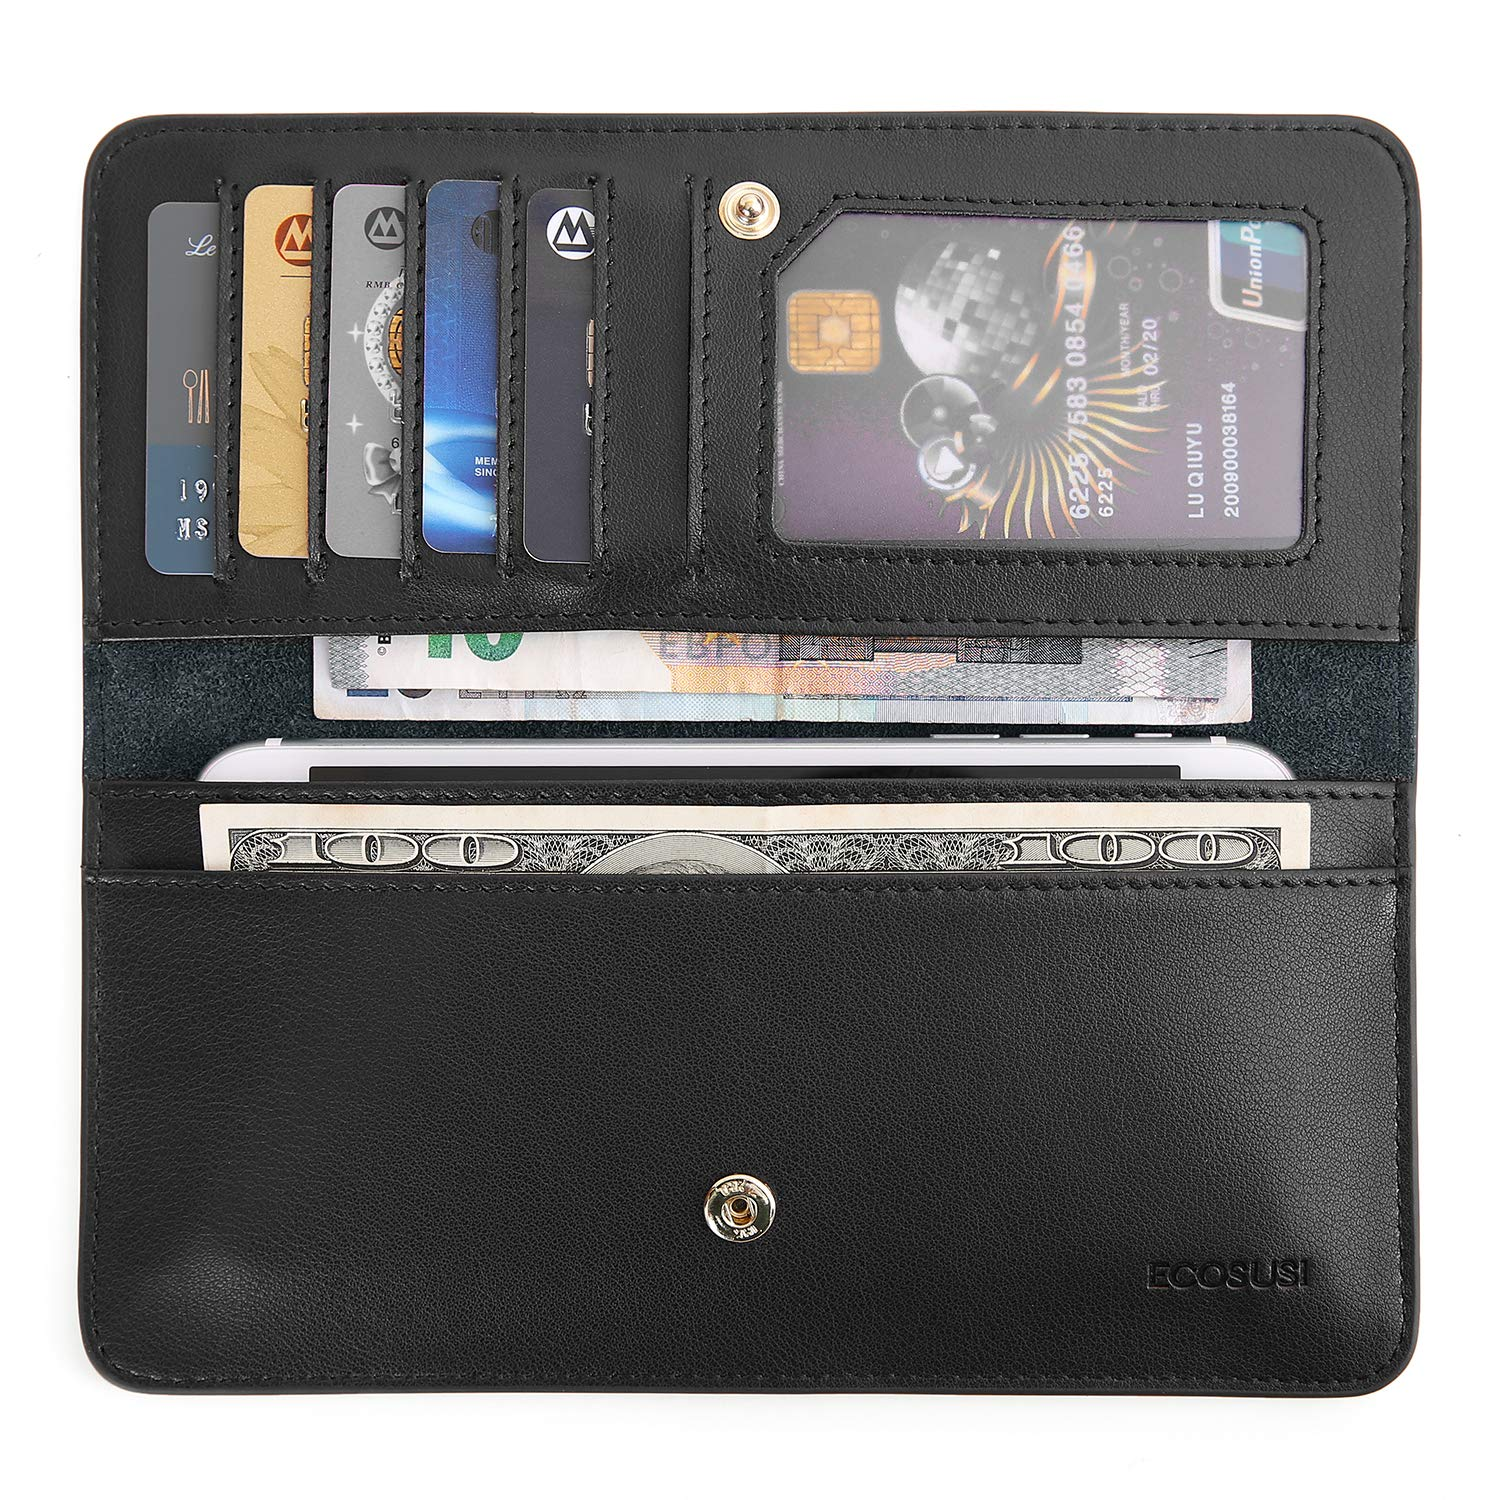 0db97abbca30 ECOSUSI Thin Wallet Long Bifold Leather Purse Minimalist Clutch Card Holder  for Women and Men